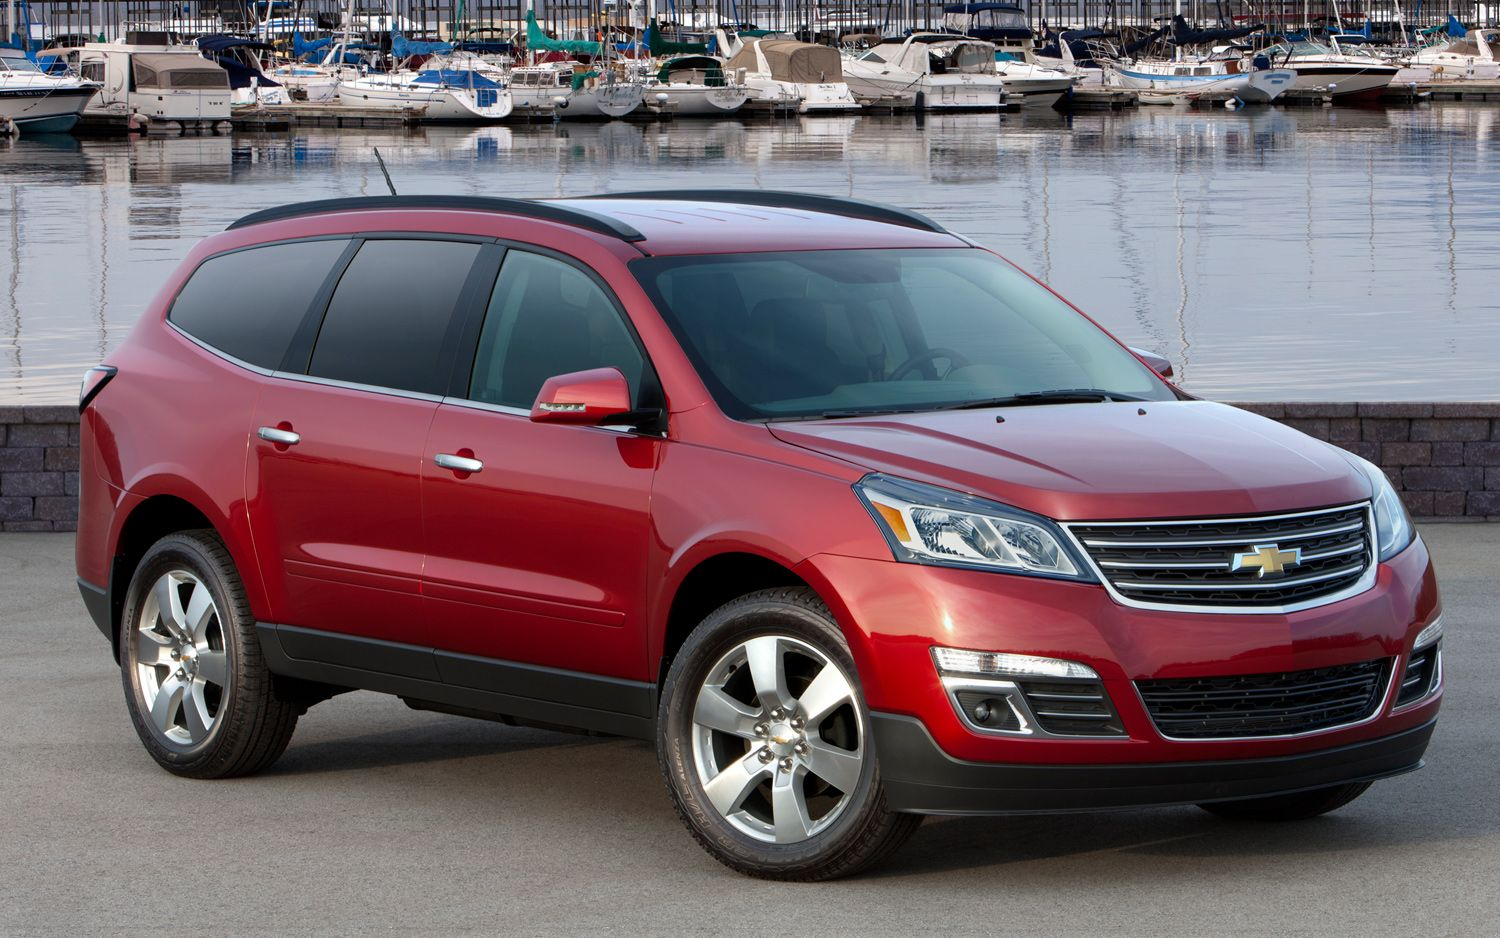 GM Crossover Matchup: 2013 Chevy Traverse vs. 2013 GMC Acadia